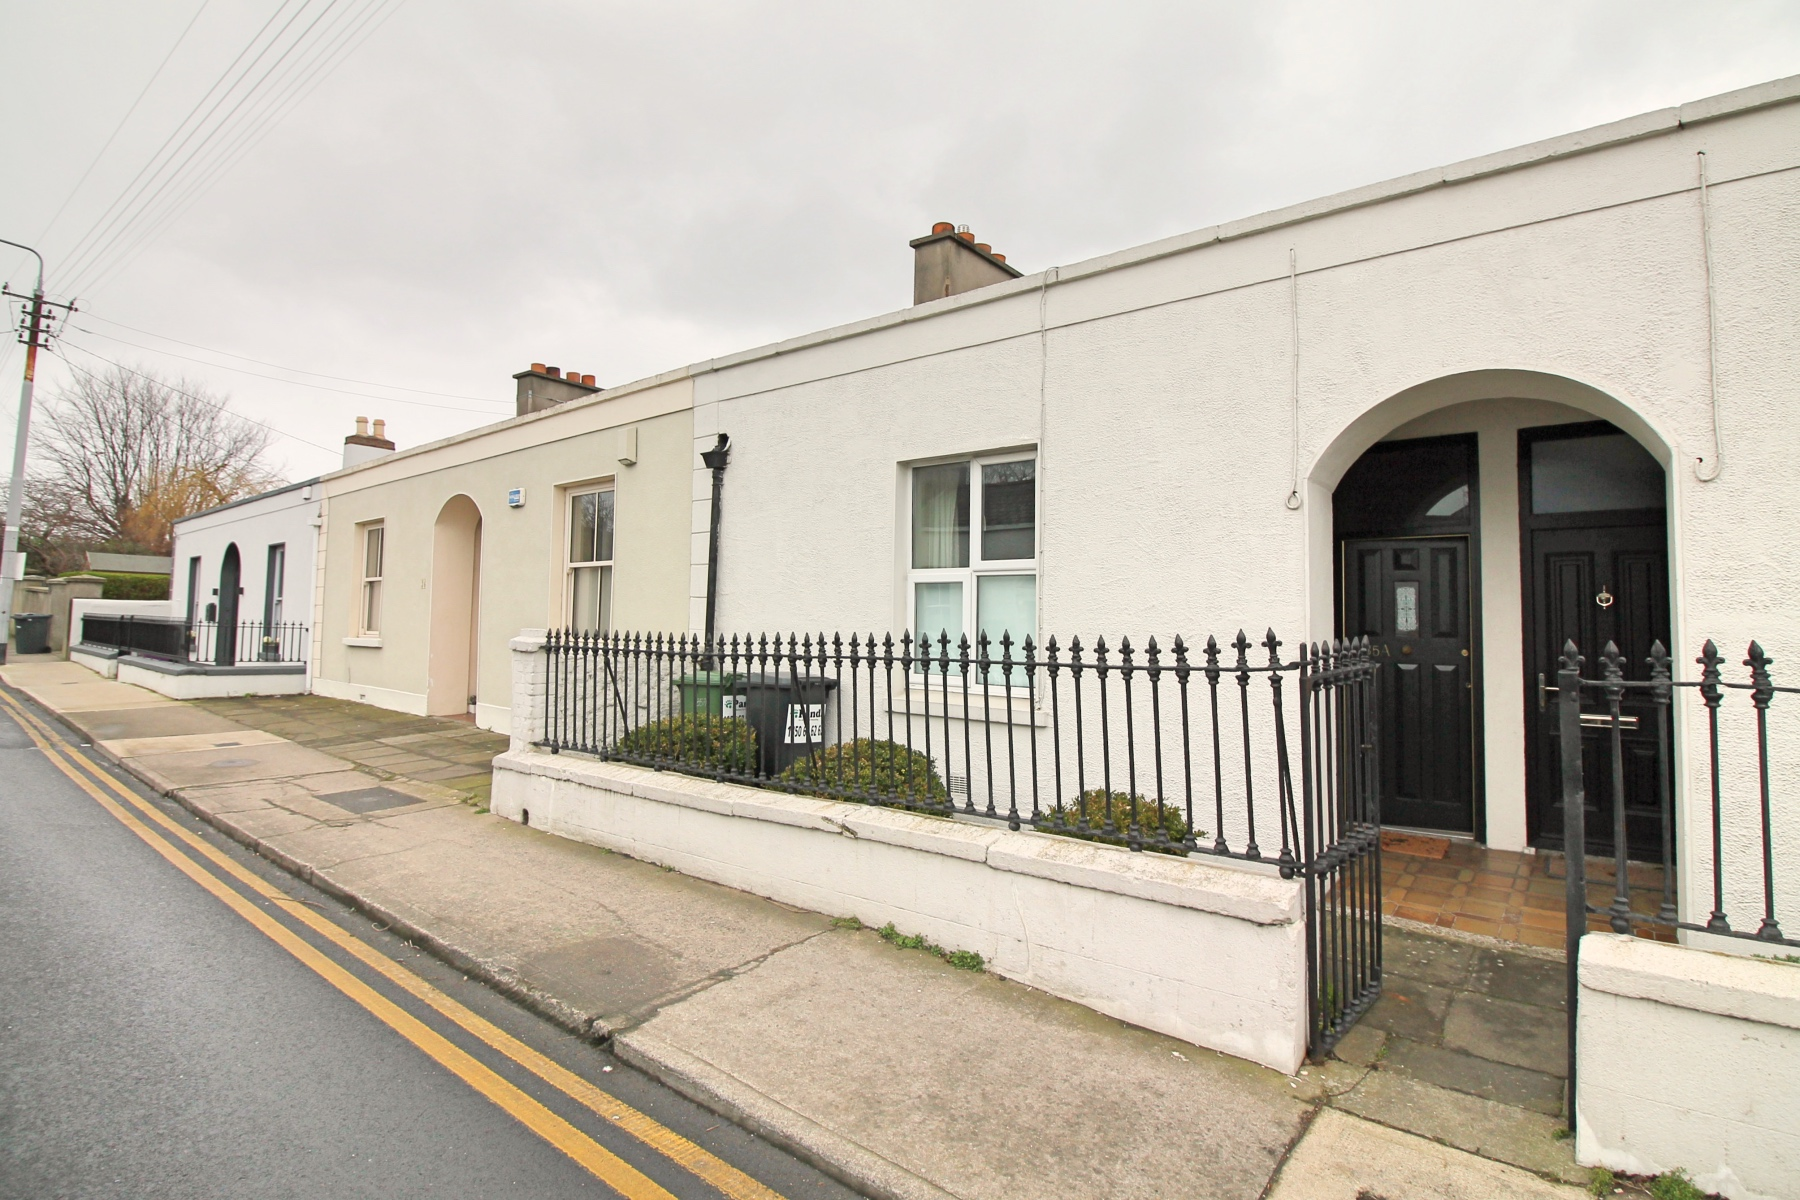 35a Mulgrave Street, Dun Laoghaire, A96 X579